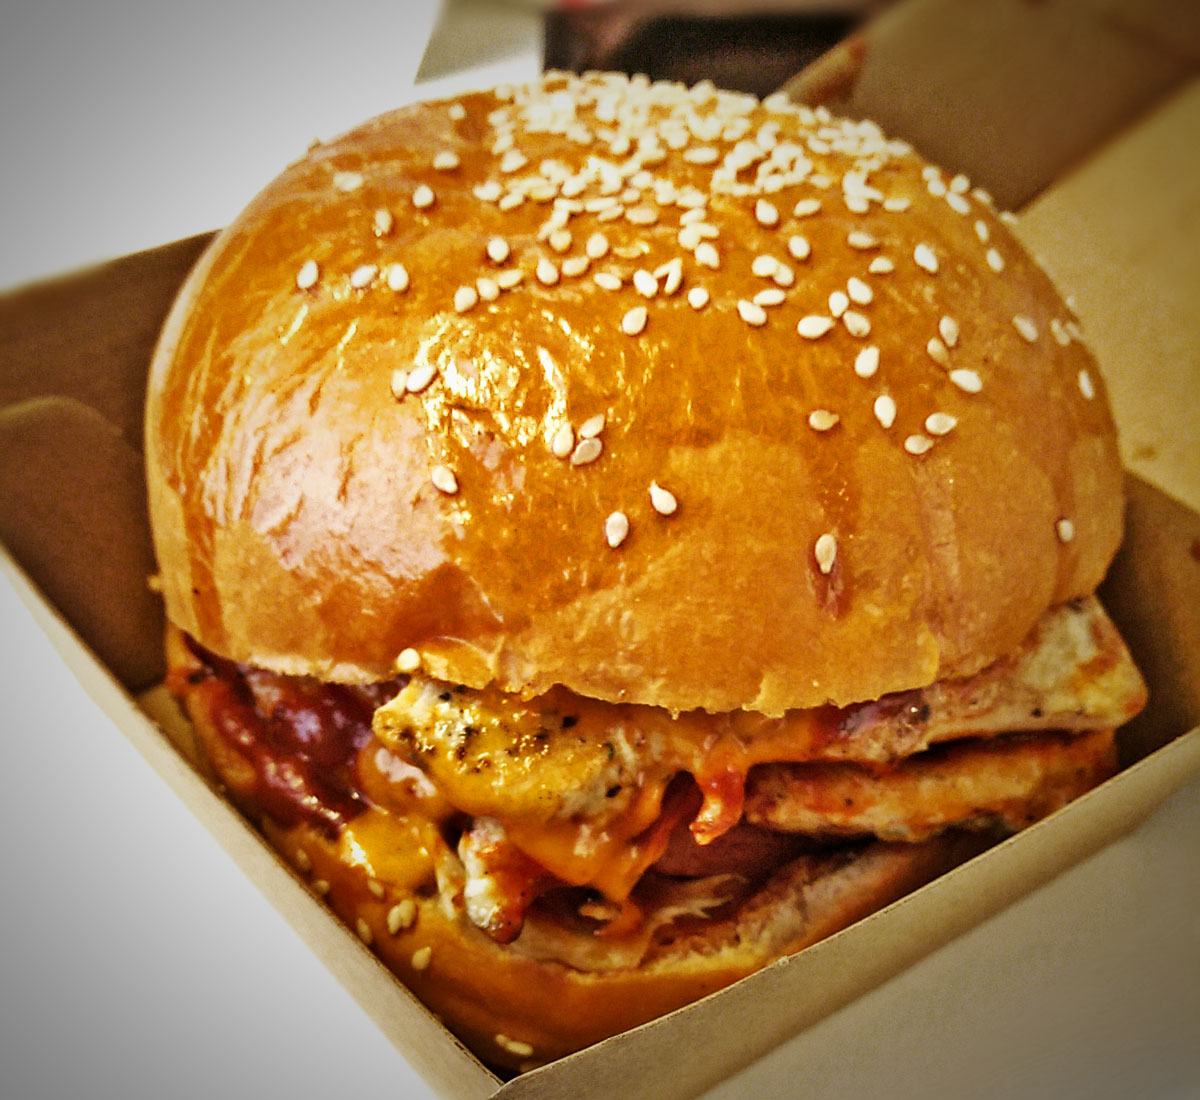 North Cafe Sandwich, Chicken Burger Review Food Critic HolyCluck Holy Cluck Sandwich Chook Eran Thomson